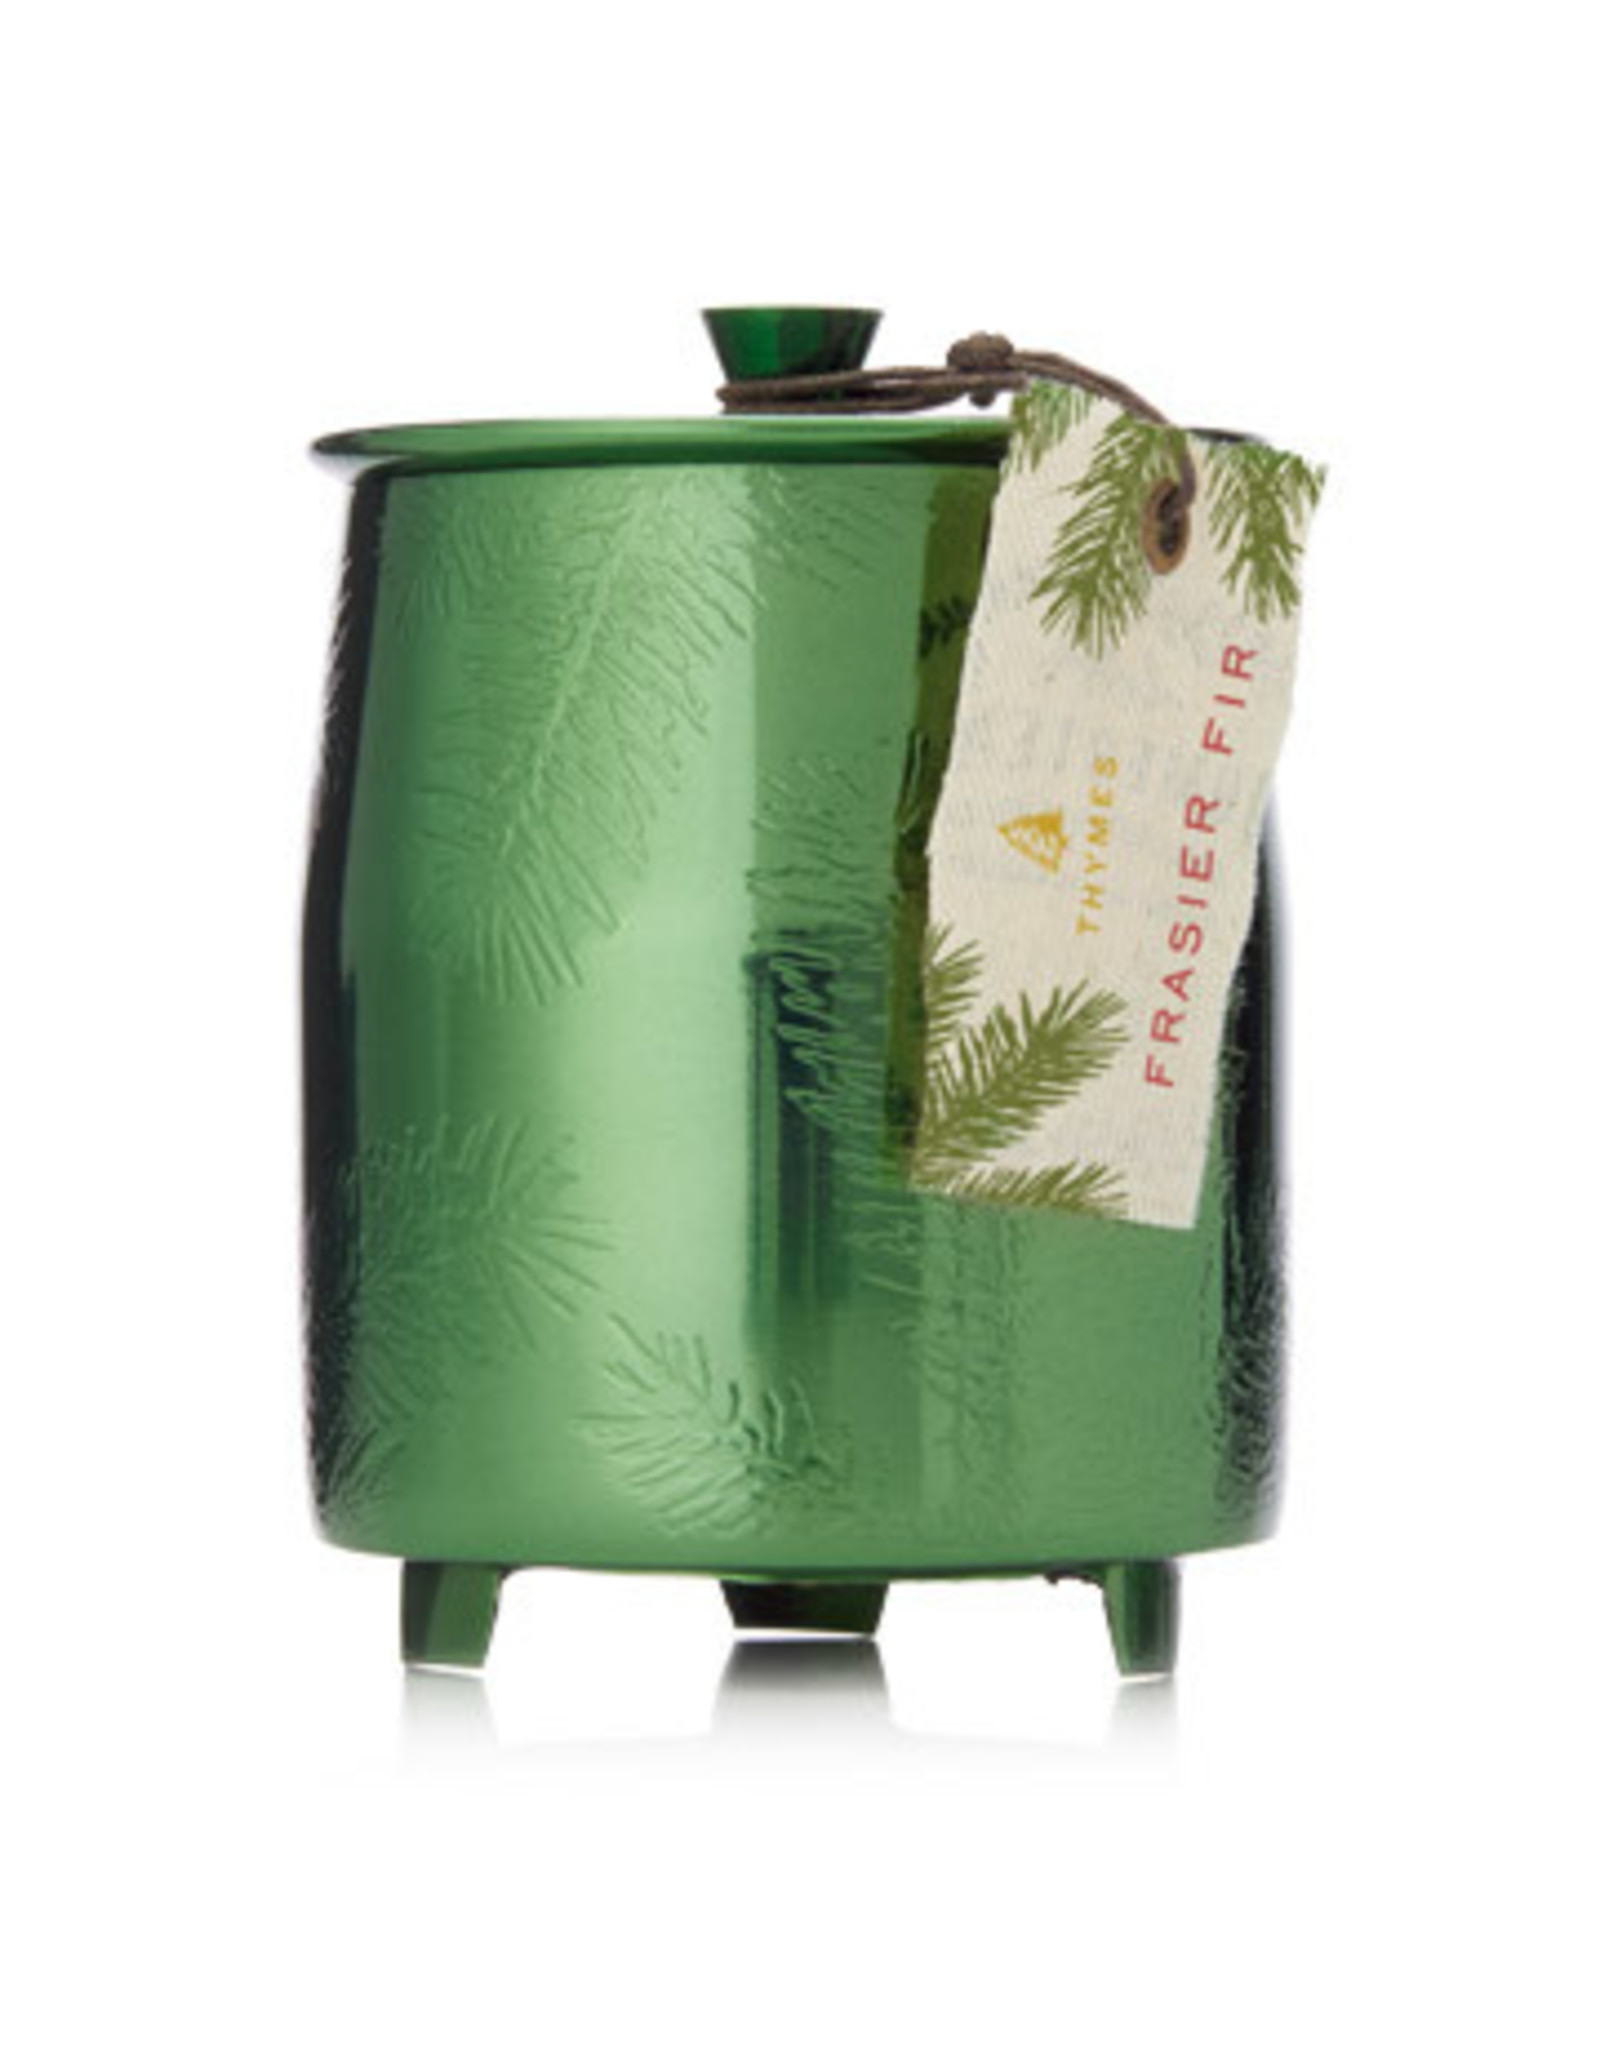 Thymes Thymes Frasier Fir Candle Green Tin, med